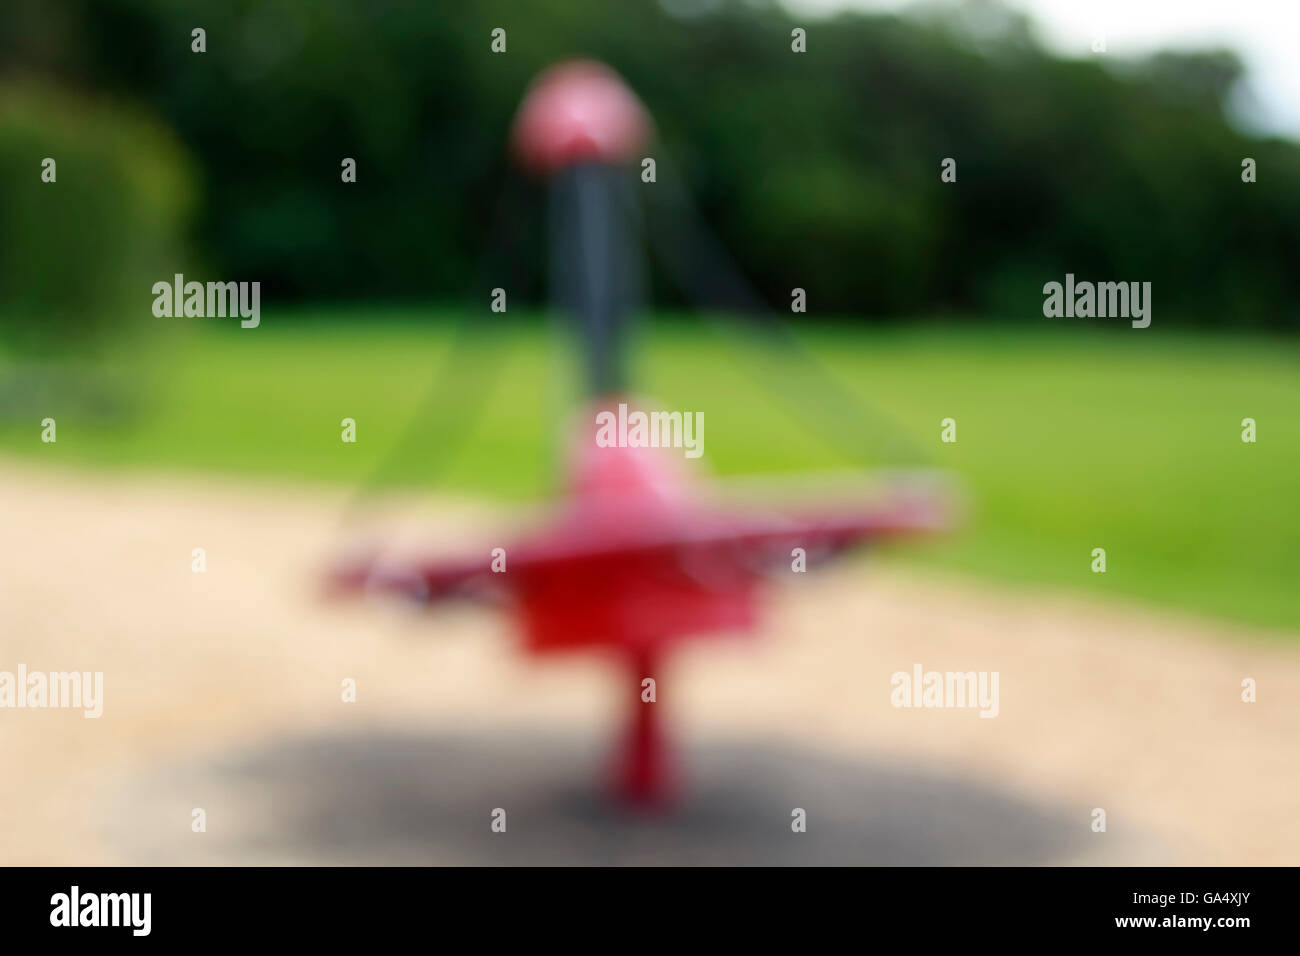 Defocused and blurred image for background of children's playground - Stock Image